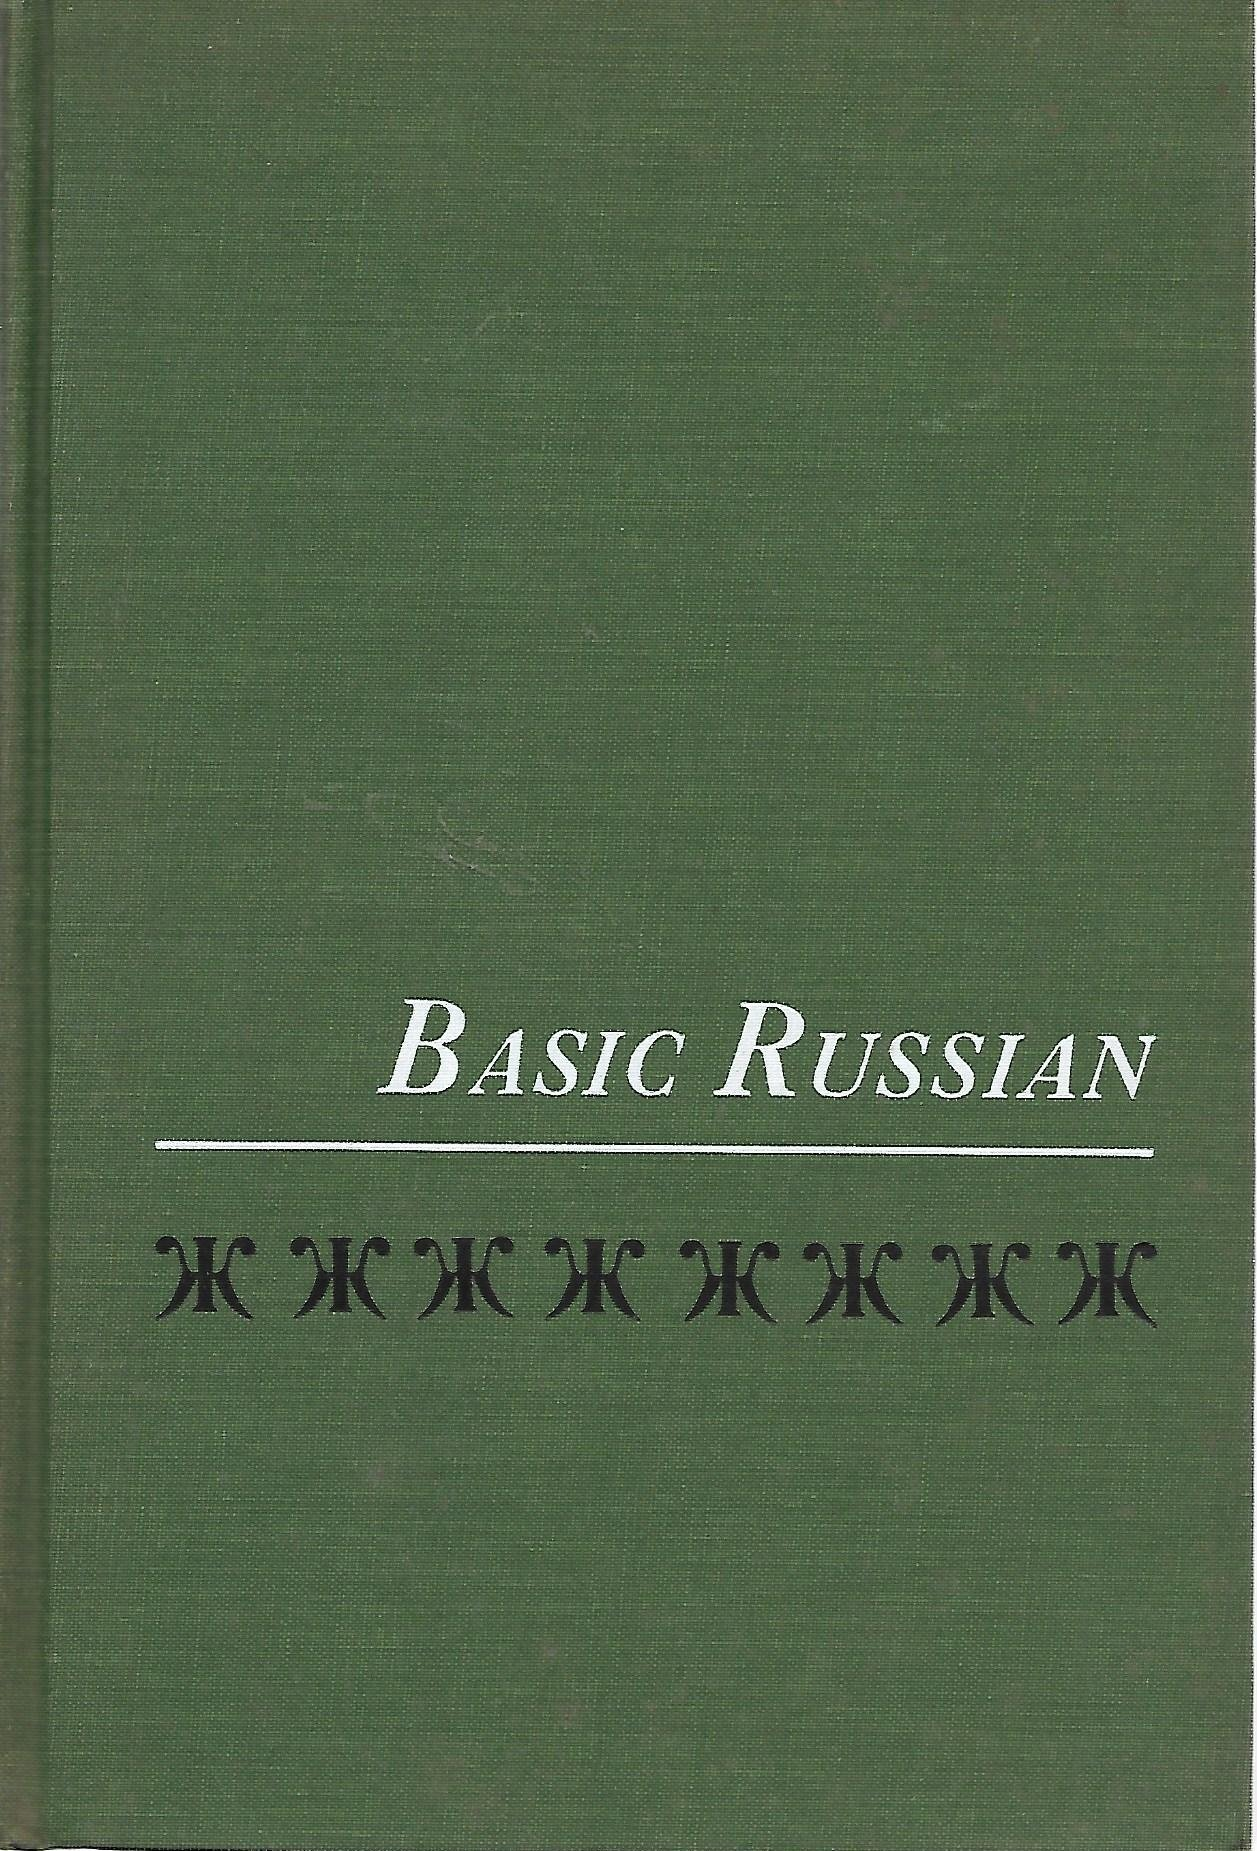 Basic Russian: A Textbook for Beginners: Rebecca A Domar: Amazon.com: Books